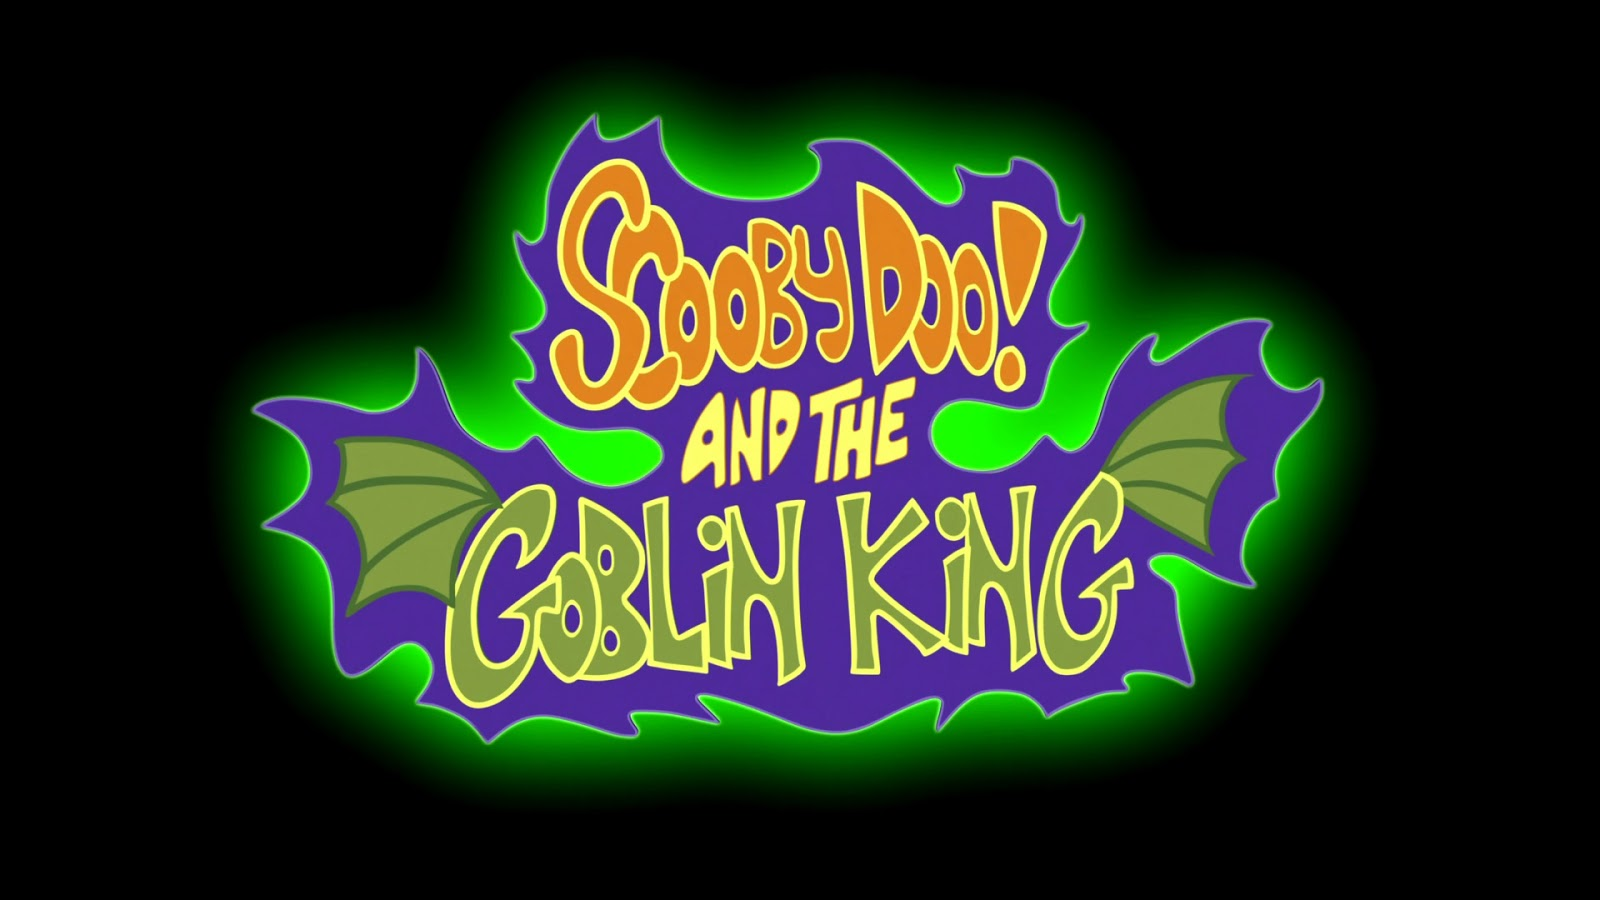 scooby doo and the goblin king full movie download